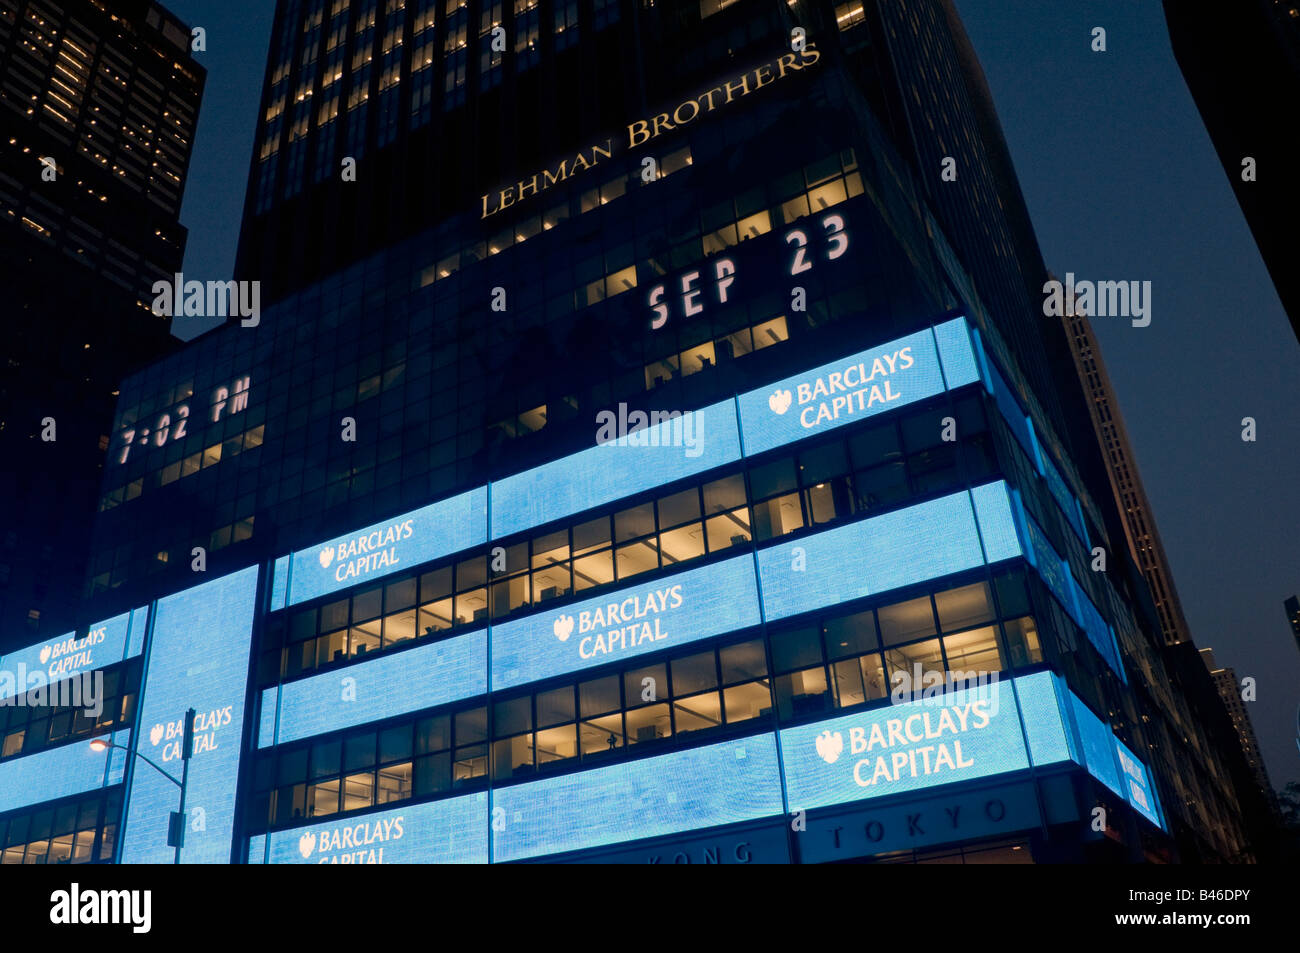 Barclays investments snapshots by shannon finanzas forex cardona law